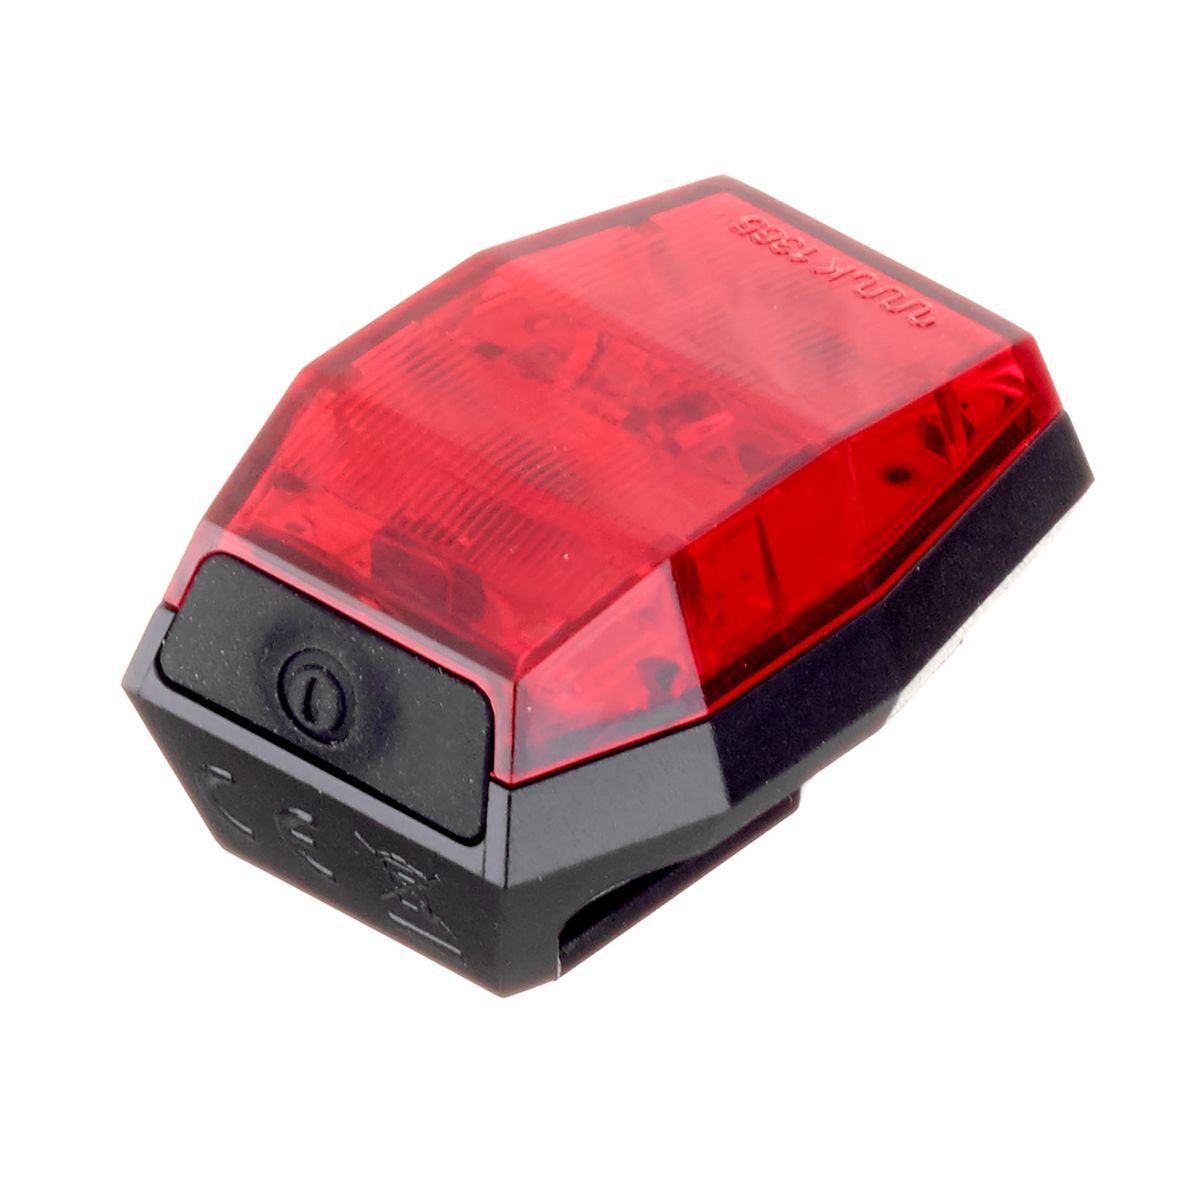 Lynx R-mini LED tail light